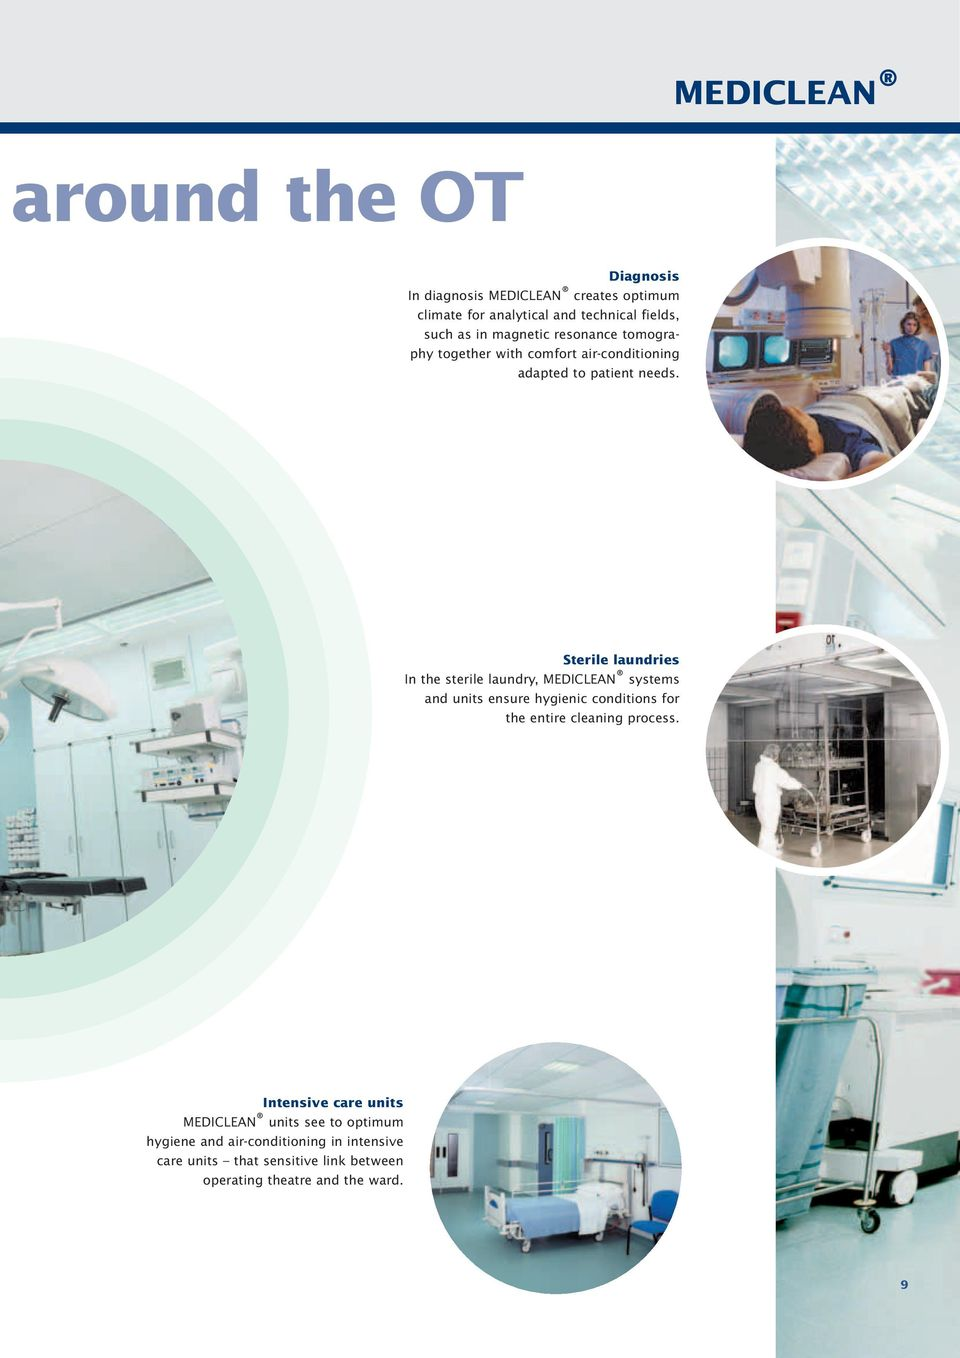 Sterile laundries In the sterile laundry, MEDICLEAN systems and units ensure hygienic conditions for the entire cleaning